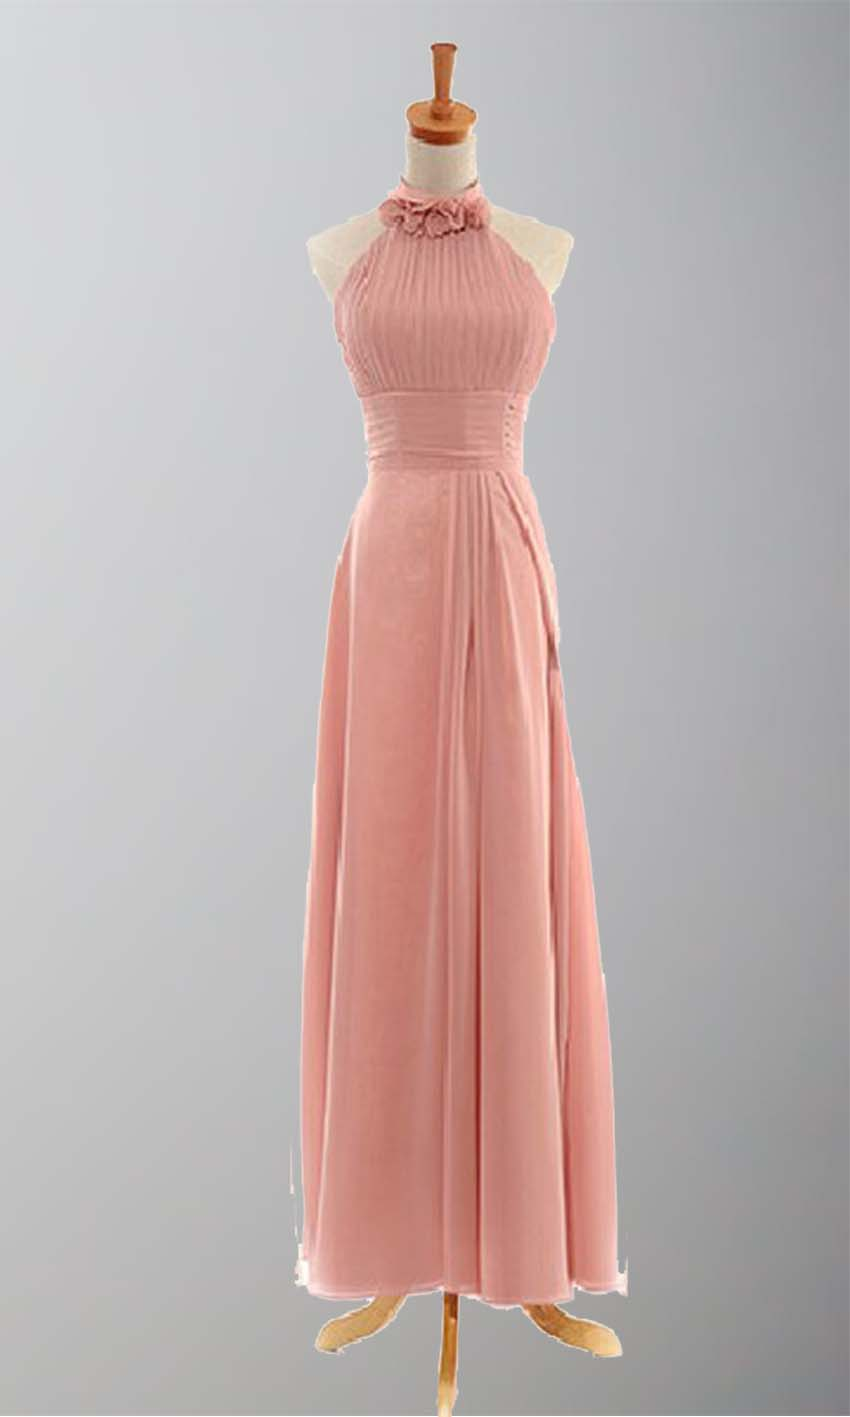 Flowery Halter Neck Empire A-line Bridesmaid Dresses KSP021 [KSP021] - £89.00 : Cheap Prom Dresses Uk, Bridesmaid Dresses, 2014 Prom & Evening Dresses, Look for cheap elegant prom dresses 2014, cocktail gowns, or dresses for special occasions? kissprom.co.uk offers various bridesmaid dresses, evening dress, free shipping to UK etc.